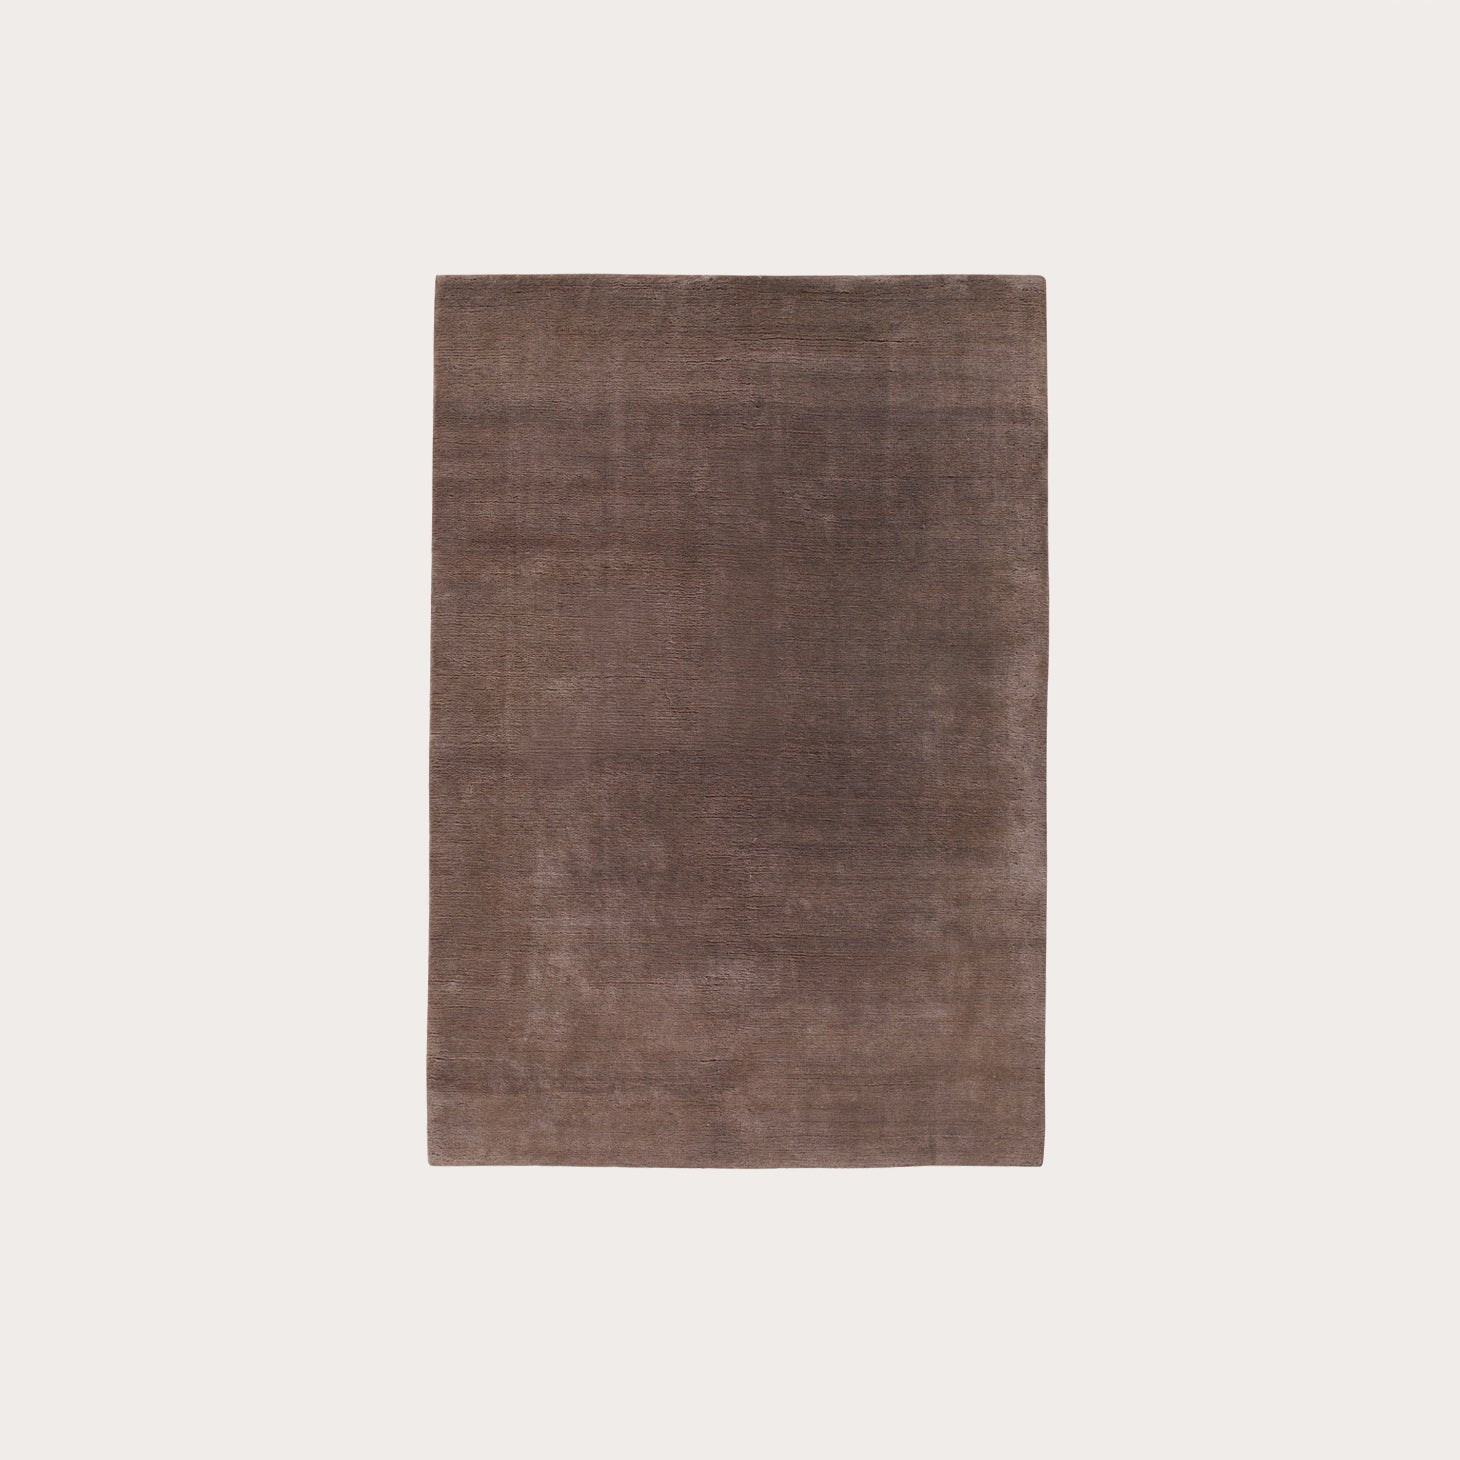 Mohair Sable Floor Coverings The Rug Company Designer Furniture Sku: 391-150-11278